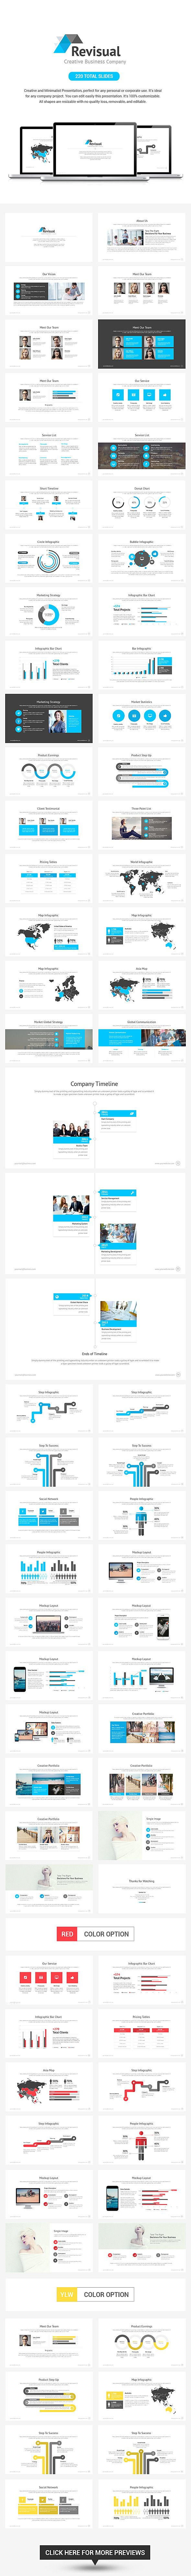 77 best powerpoint templates themes images on pinterest products revisual powerpoint template toneelgroepblik Images